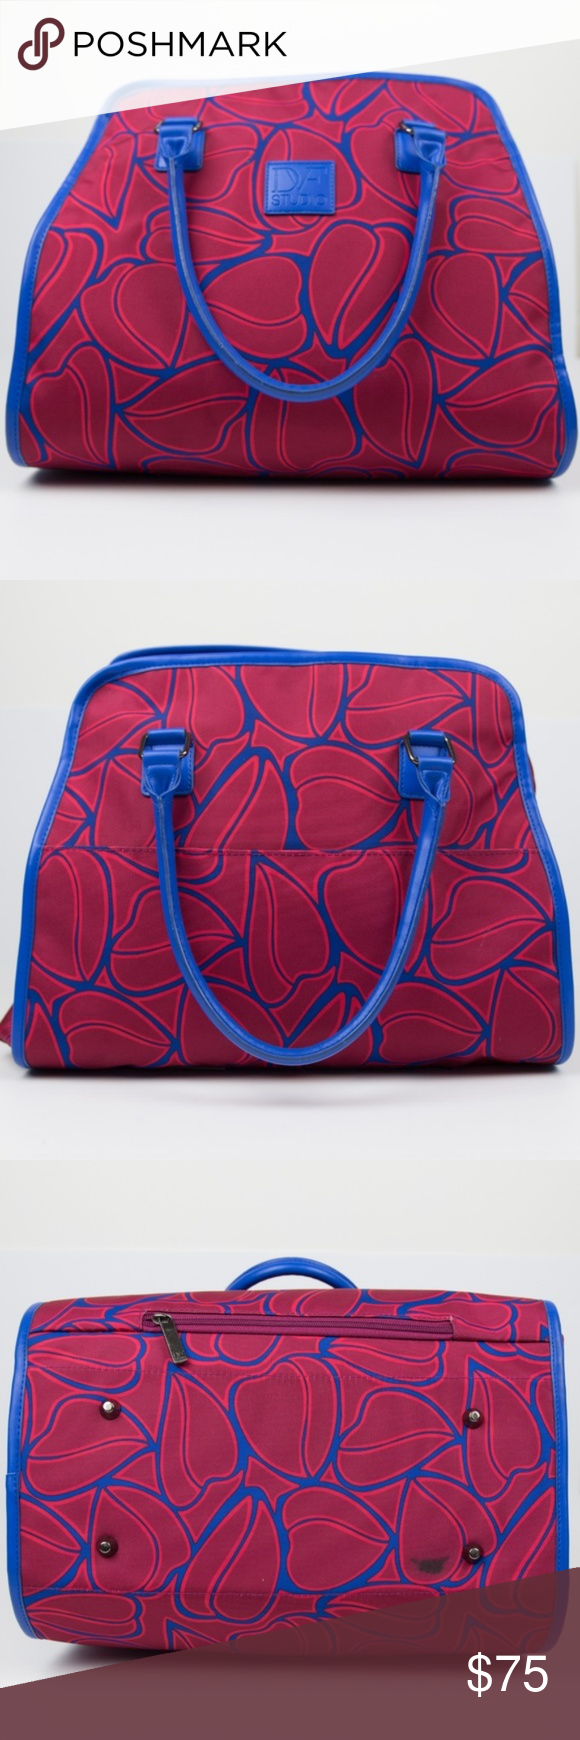 """Diane von Furstenberg Amor Travel Tote Bag Red Diane von Furstenberg DVF Studio """"Amor"""" travel tote. Great carry on/overnight bag for a weekend getaway or to carry on the airplane. Nicely holds a laptop as well. Red and blue with leaf pattern. Dual rolled top handles, zip top closure, trolly sleeve, protective feet, inside has side wall slip pockets and one side wall zip pocket. Good preloved condition. One marker mark on the bottom of the bag, otherwise no noticeable holes, stains or rips. Diane von Furstenberg Bags Totes"""